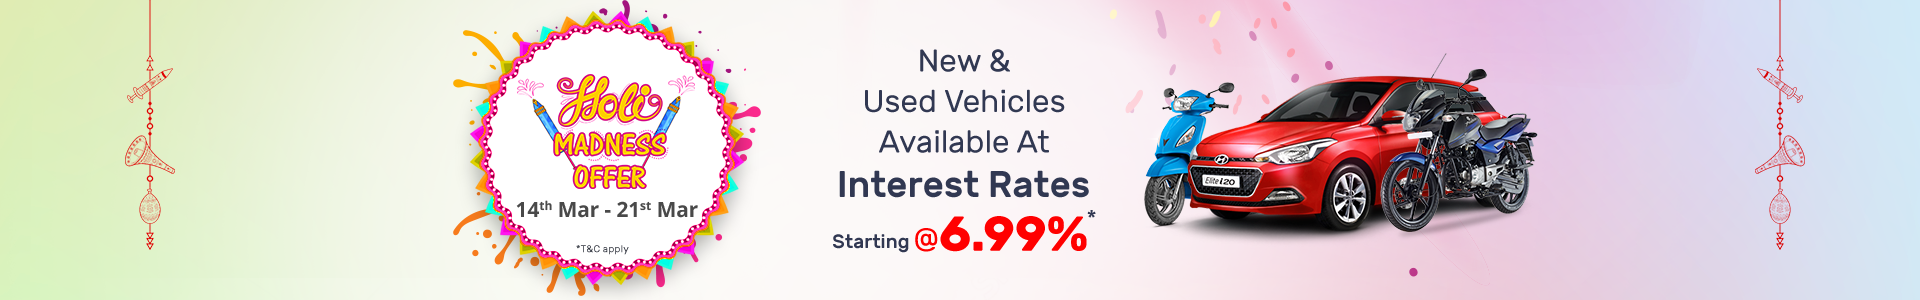 Year-End-Sale Automobile-Services